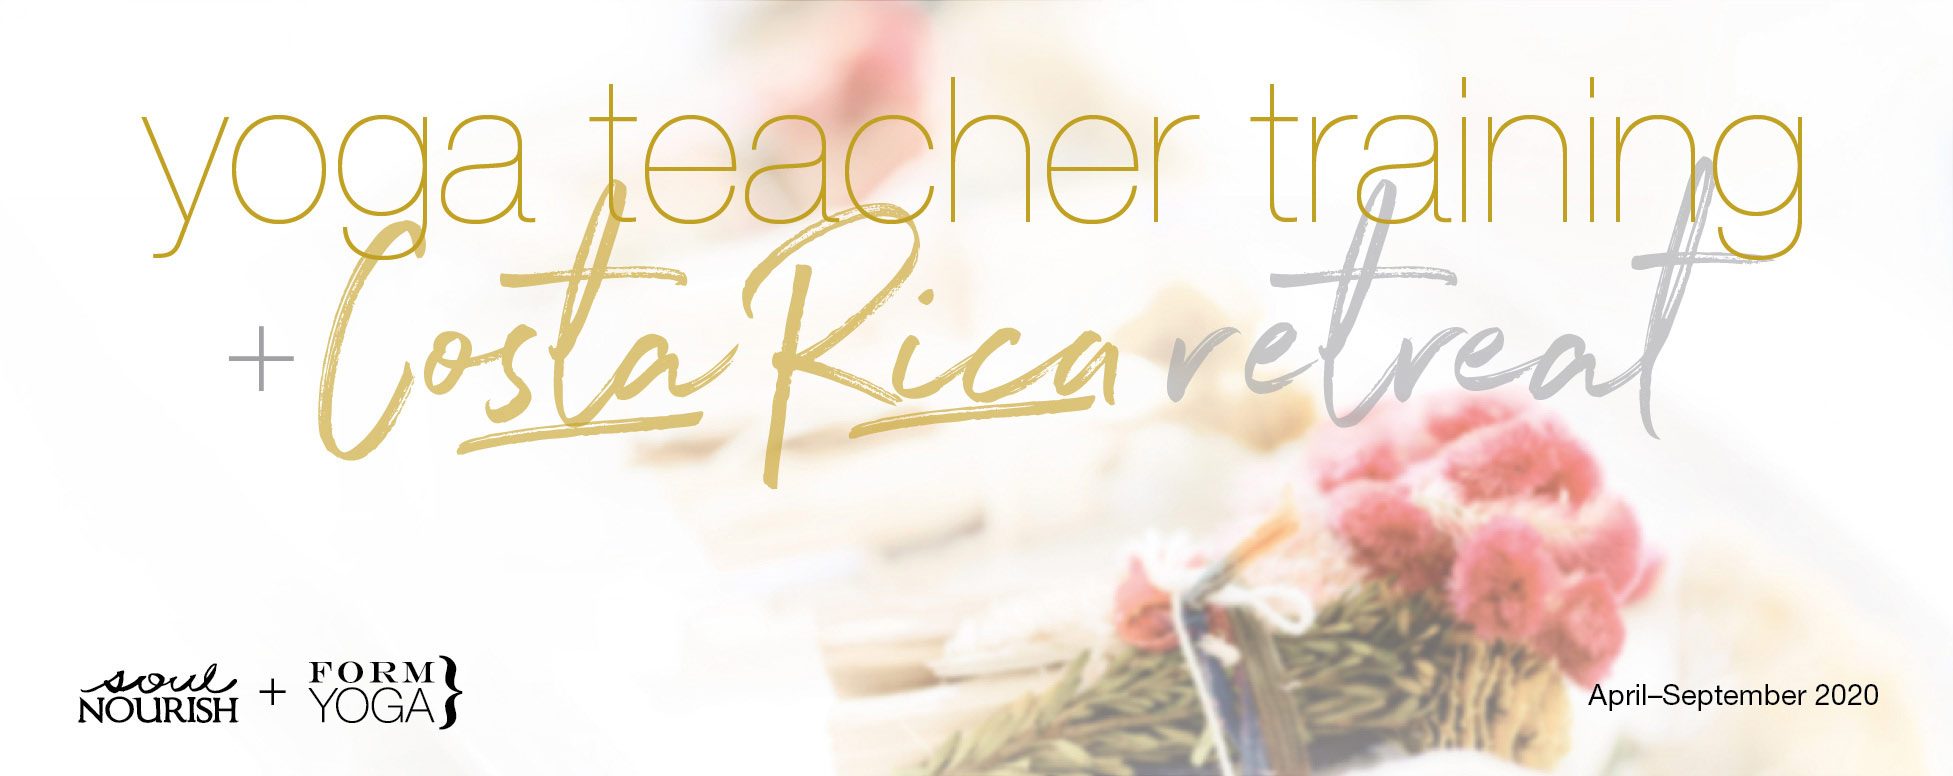 yoga teacher training Costa Rica retreat Soul Nourish Atlanta Decatur